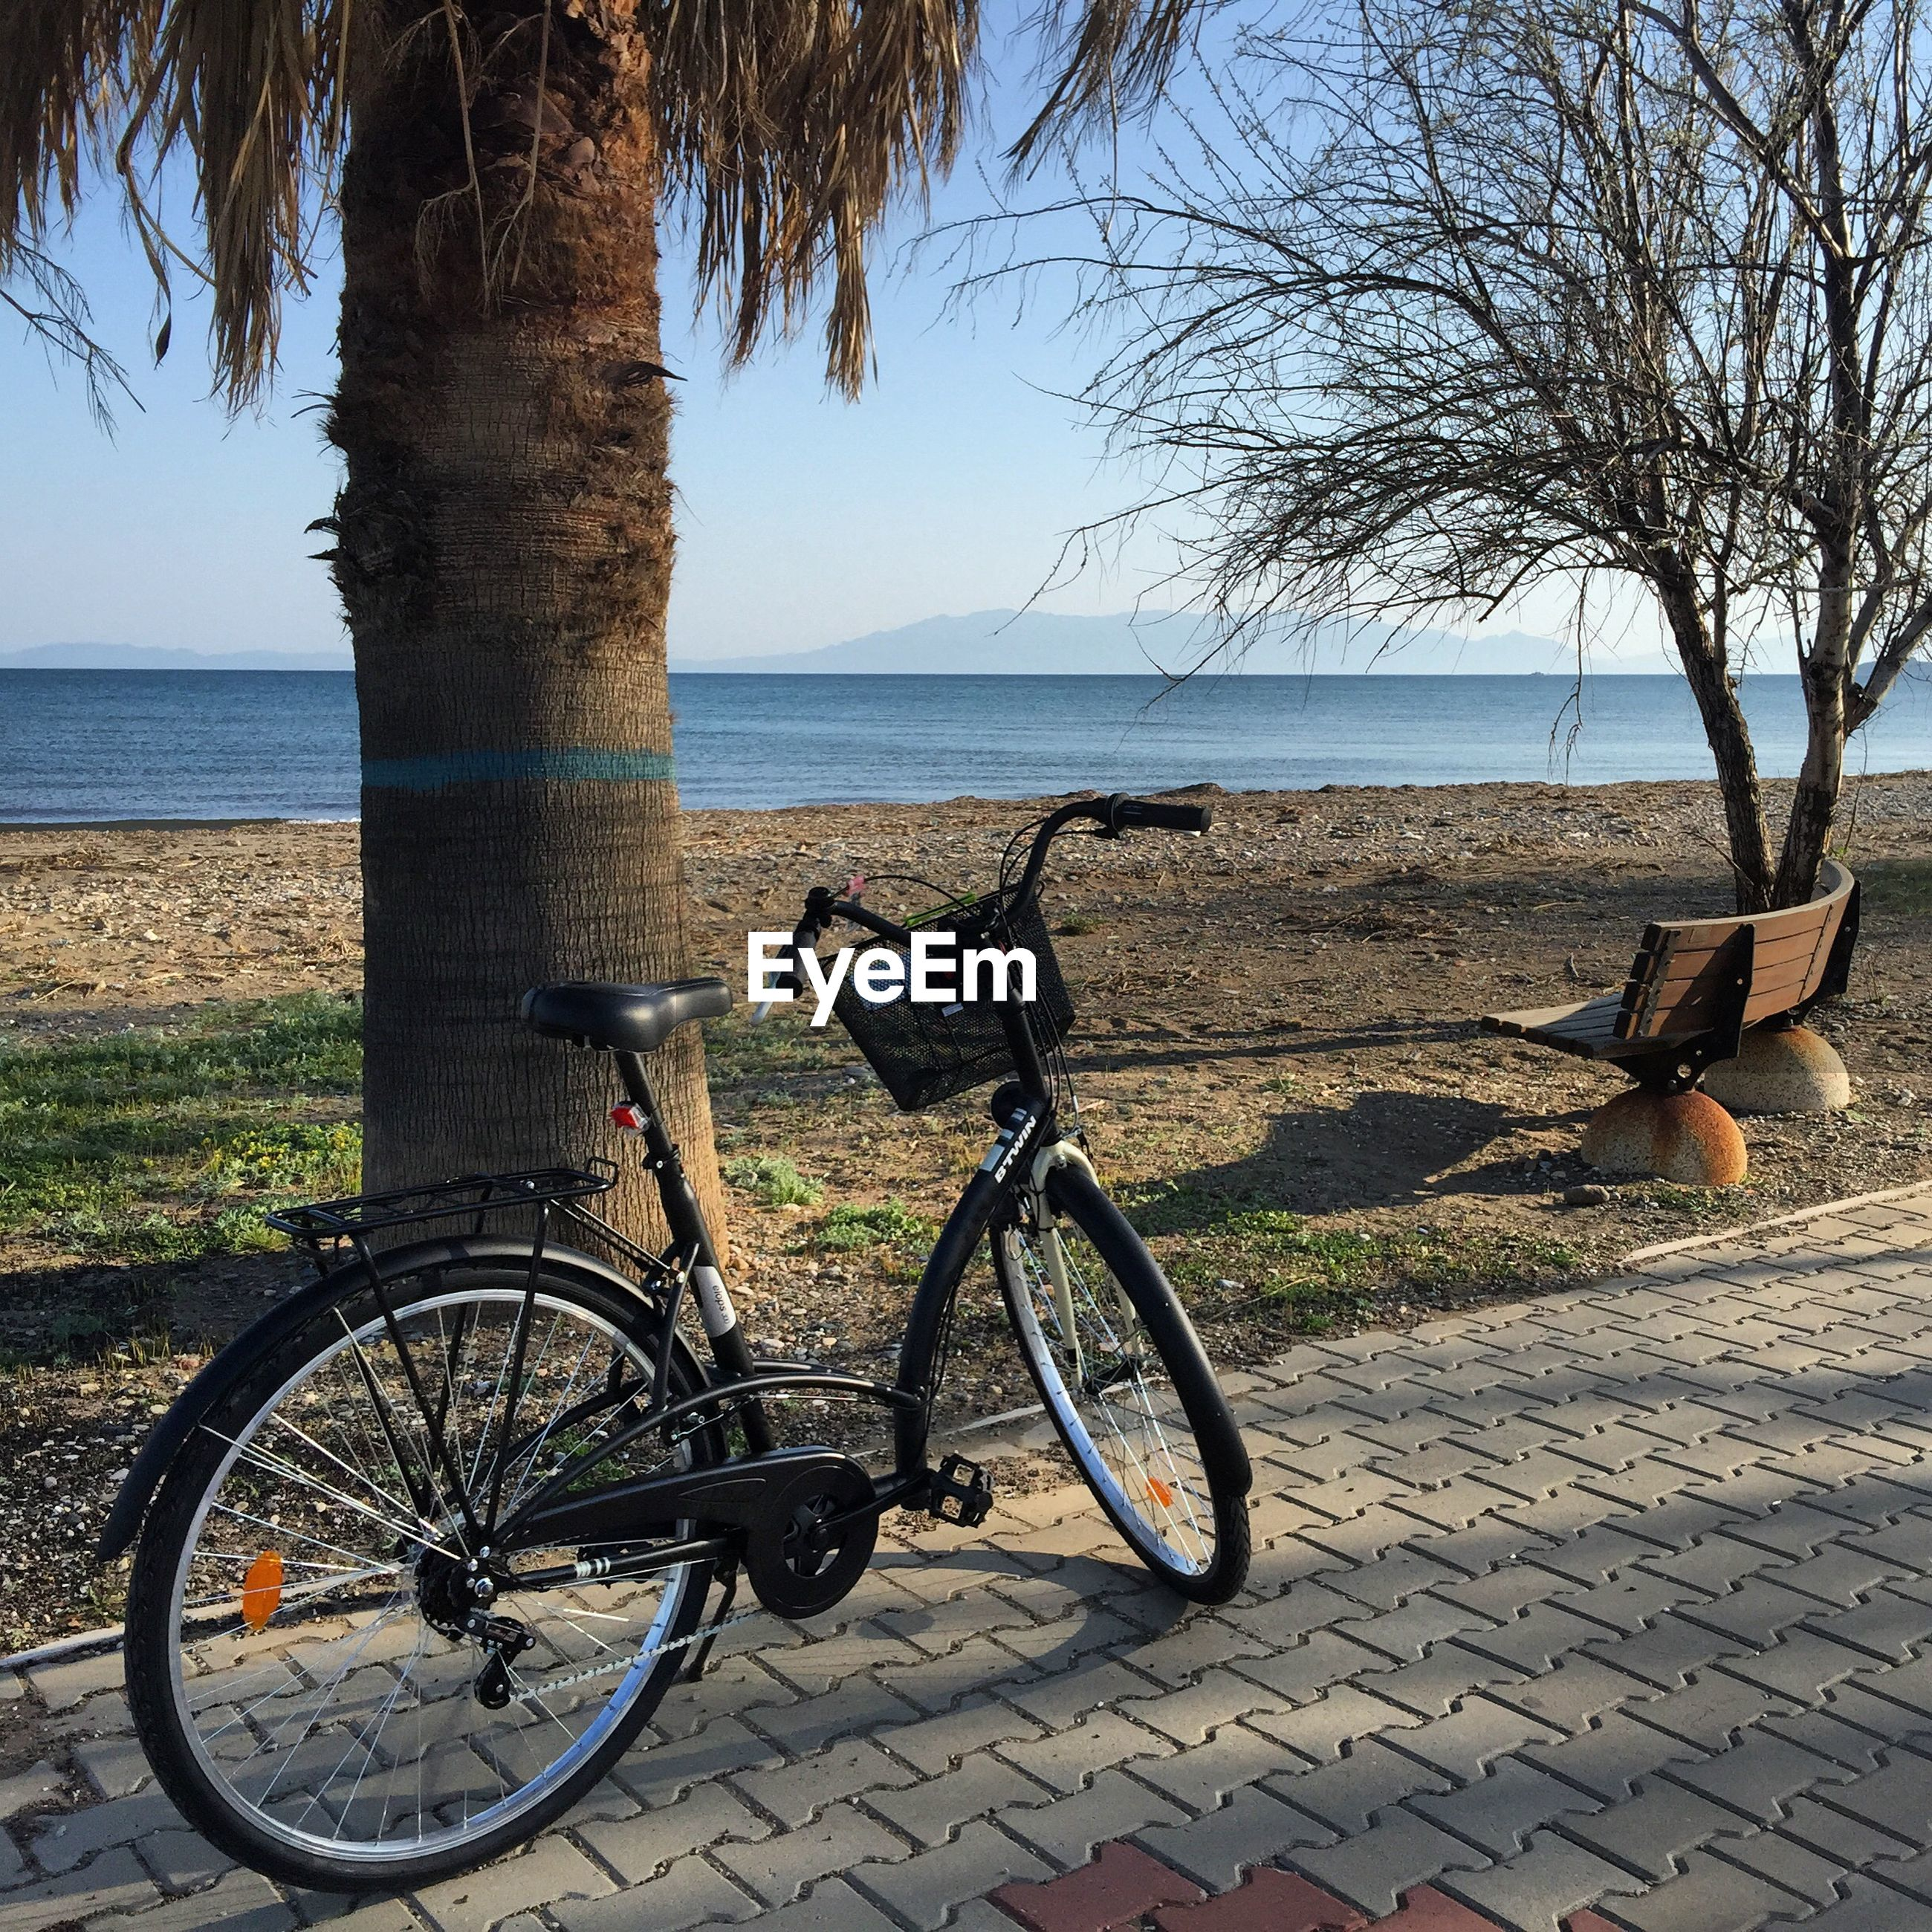 bicycle, sea, water, horizon over water, tree, transportation, mode of transport, parking, beach, land vehicle, stationary, tranquility, parked, tranquil scene, shore, sky, scenics, nature, beauty in nature, shadow